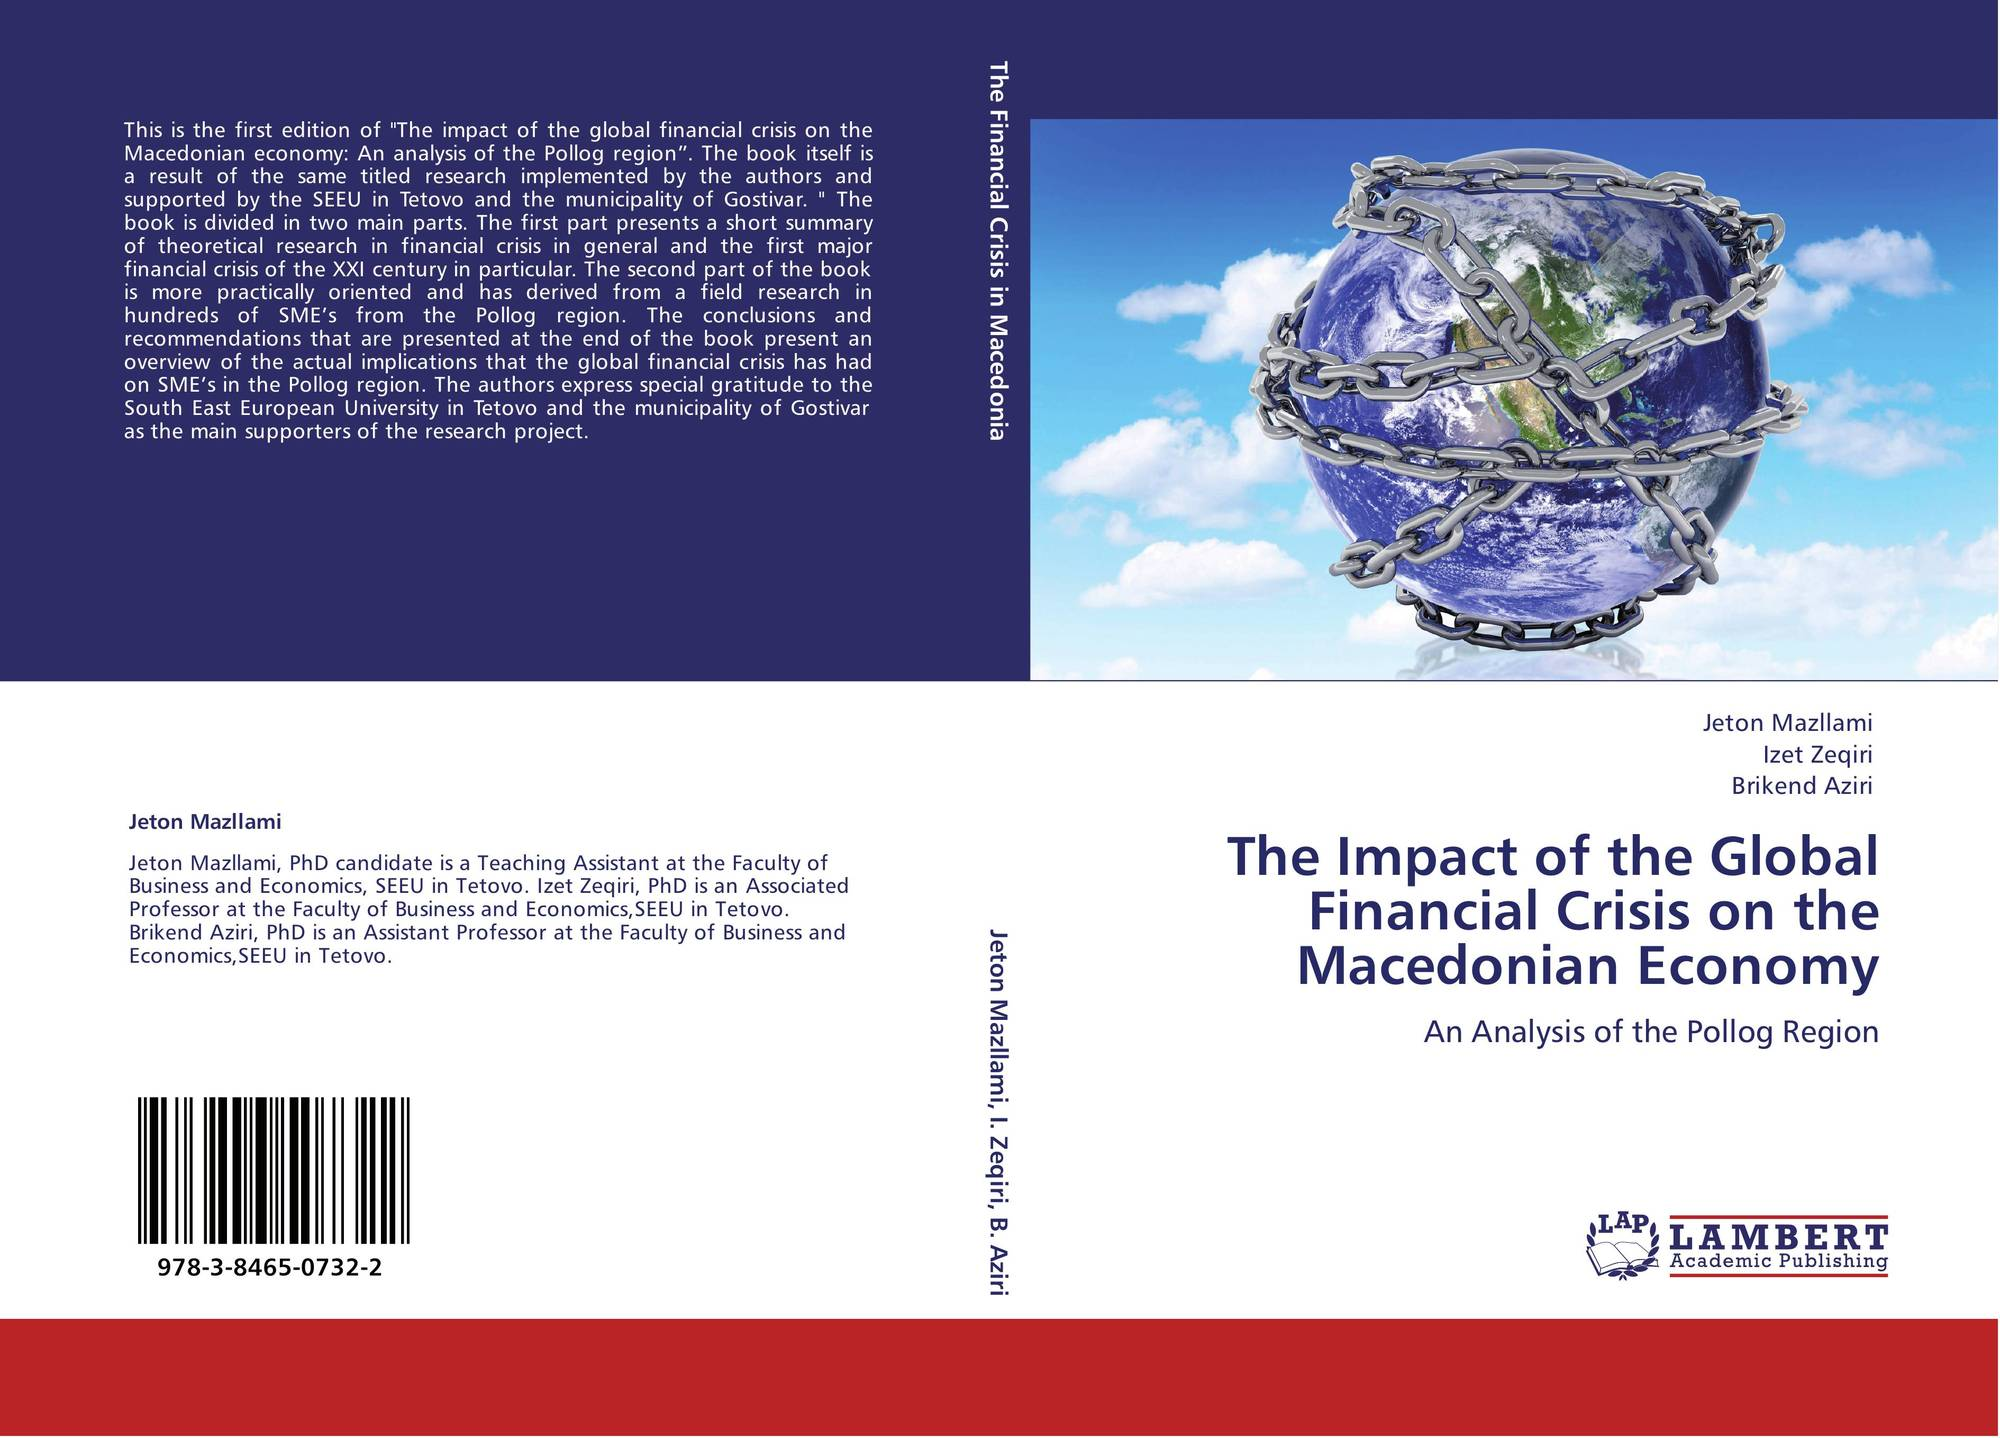 impact of the global financial crisis Advertisements: let us make in-depth study of the global financial crisis and its impact on india's growth global financial crisis: the global financial crisis surfaced around august 2007.